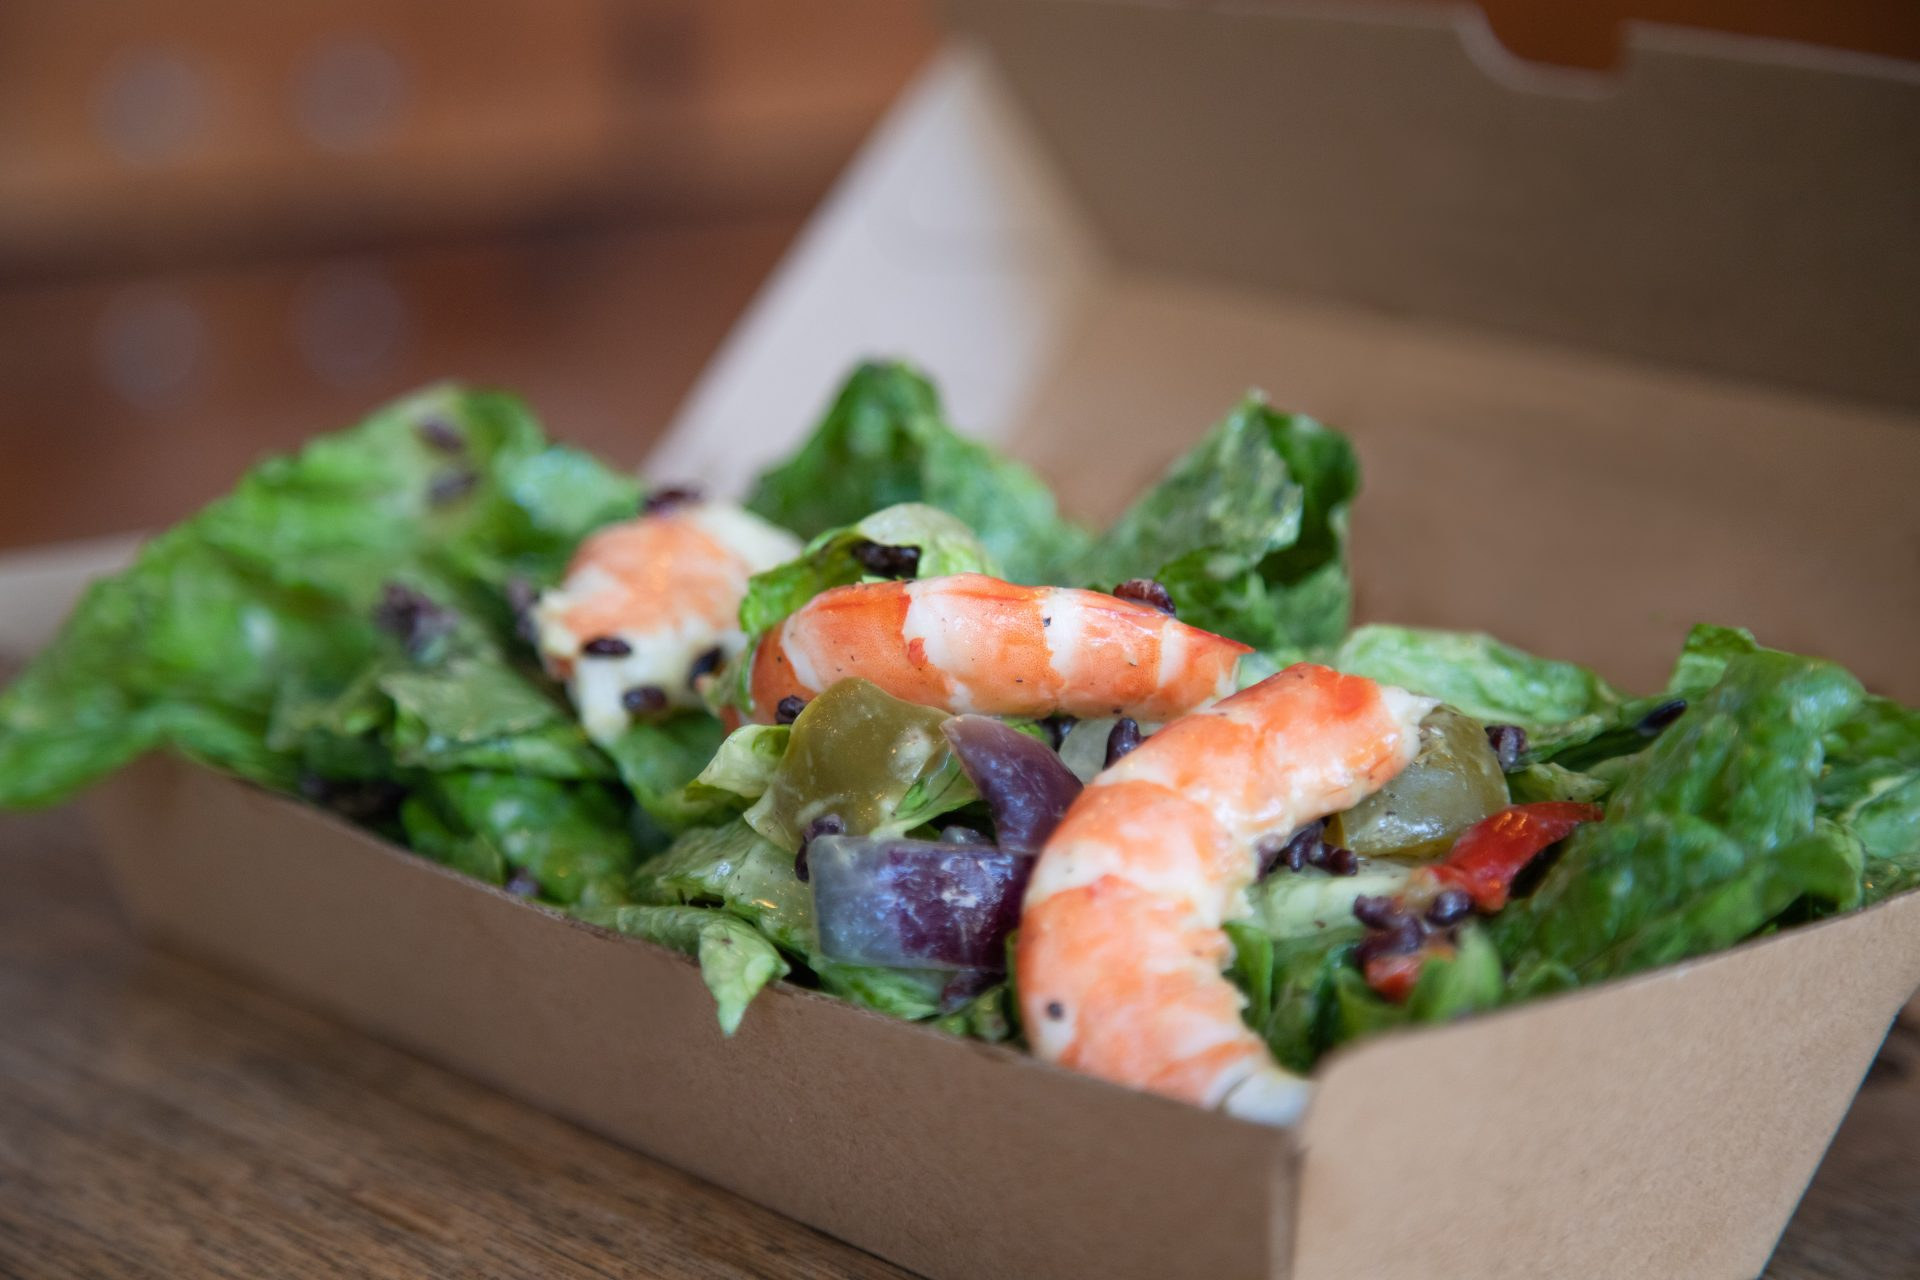 Our mason jar salads are tossed and then put into a kraft coloured takeaway box